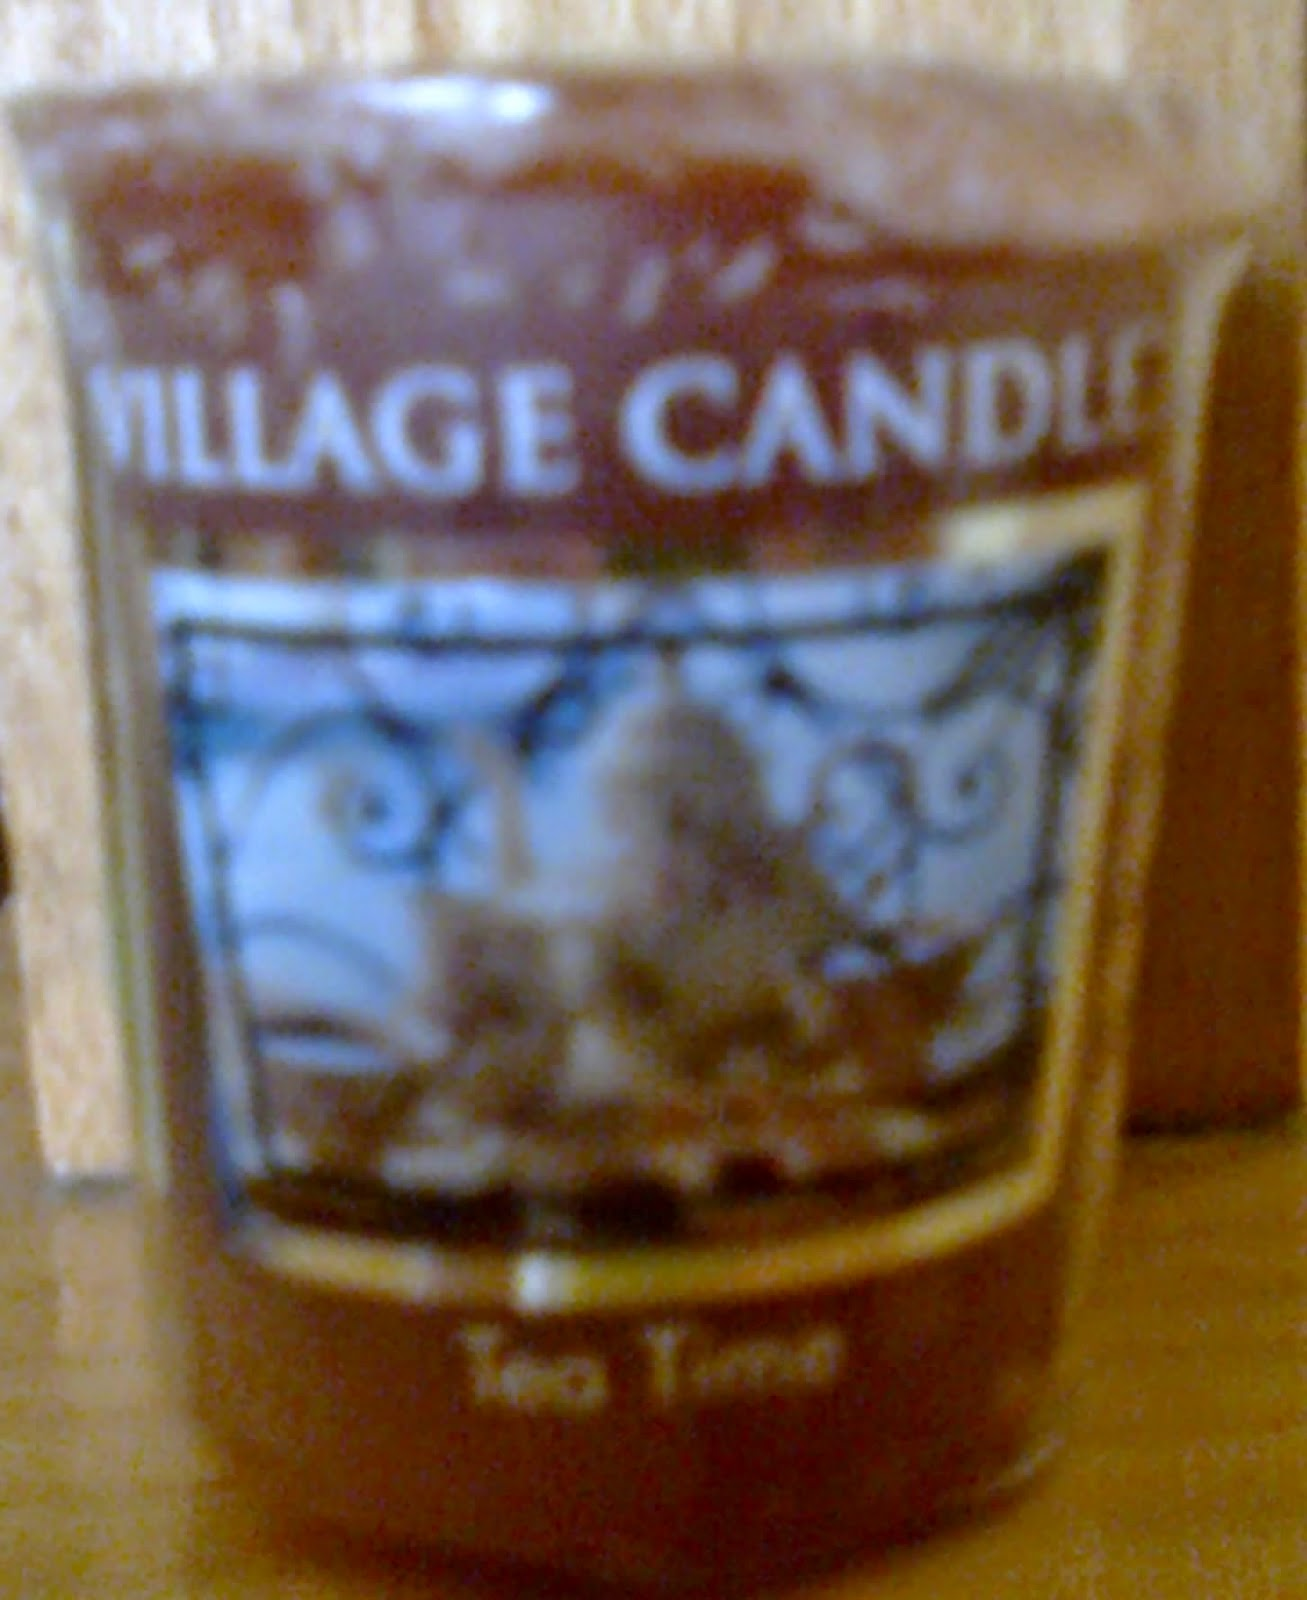 Tea Time Village Candle